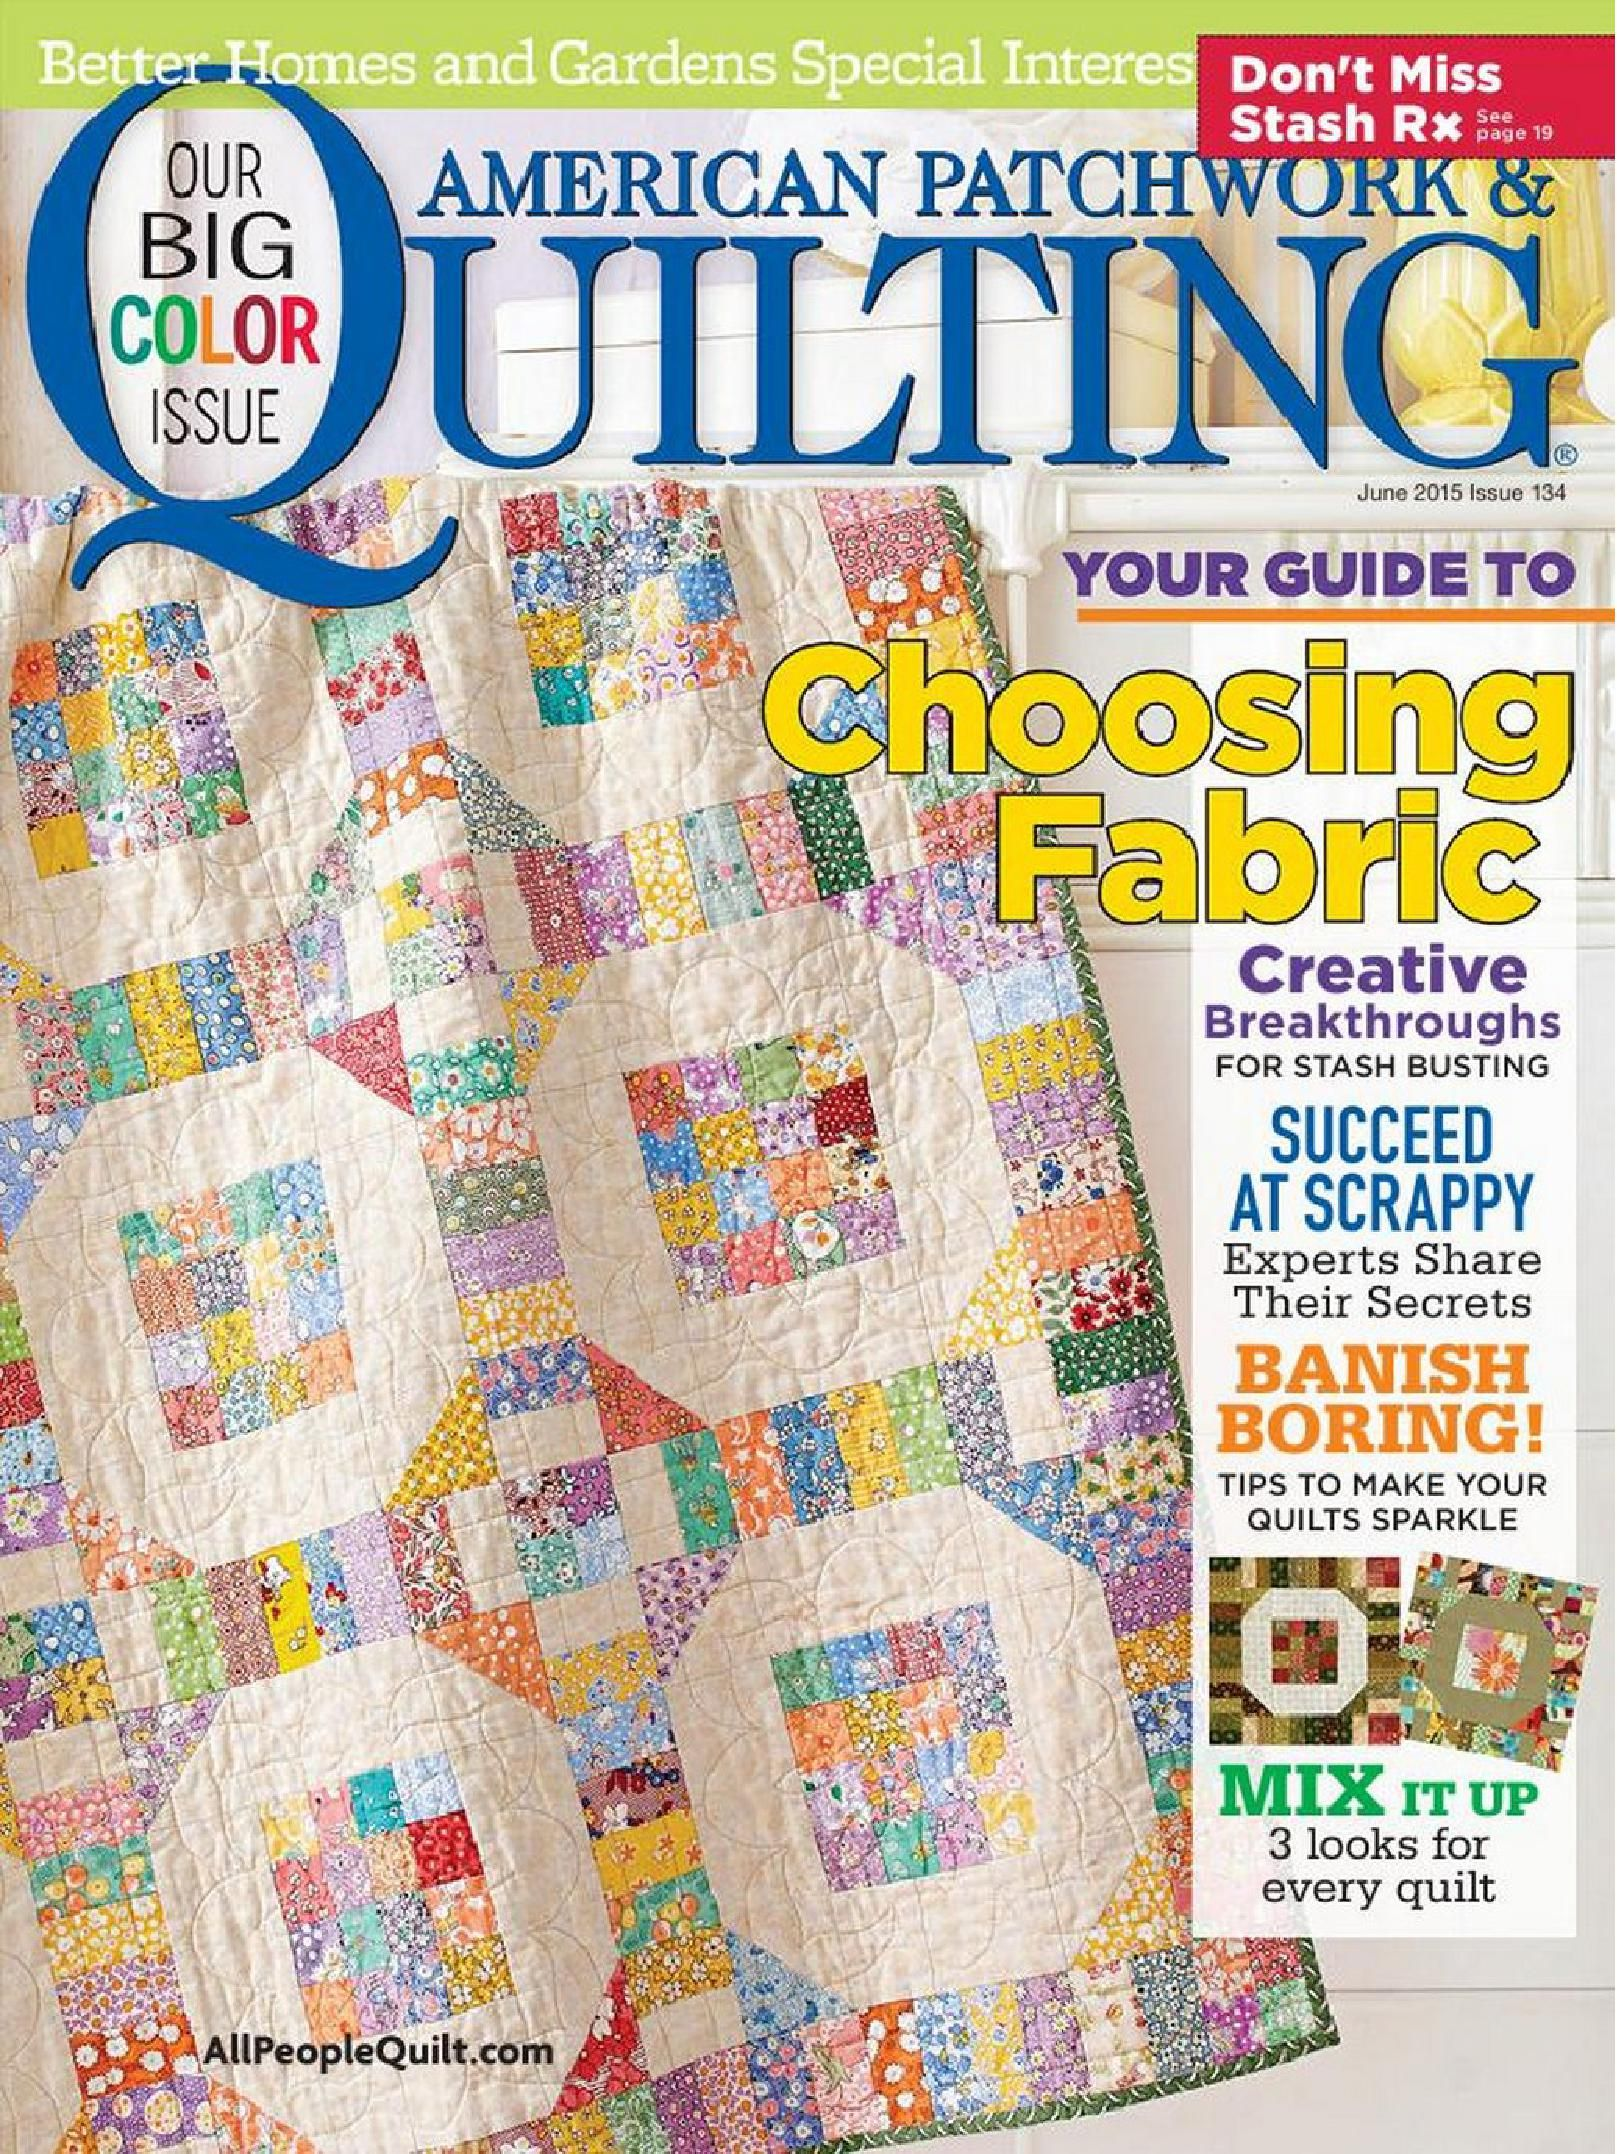 american russellquiltera wikipedia and wiki patchwork history of quilting quilt